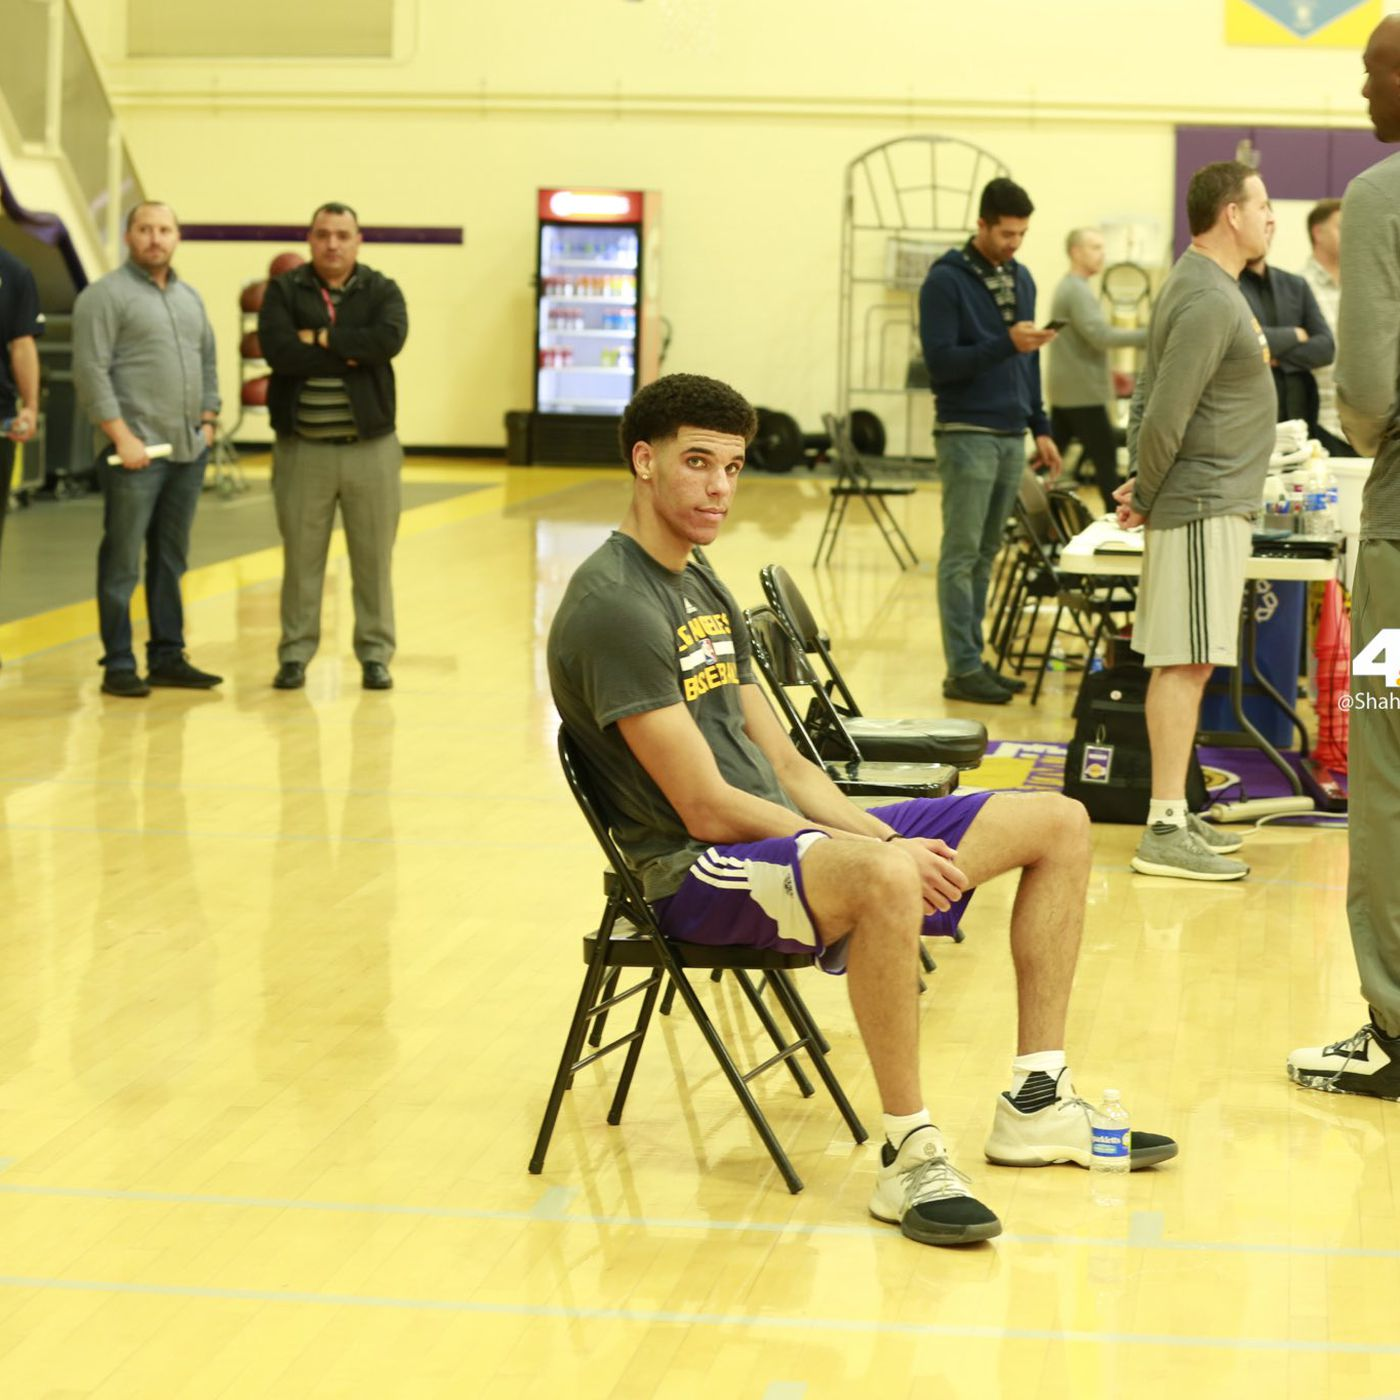 91fd4521f25c 3 possible reasons Lonzo Ball didn t wear his own shoe at his Lakers  workout - SBNation.com